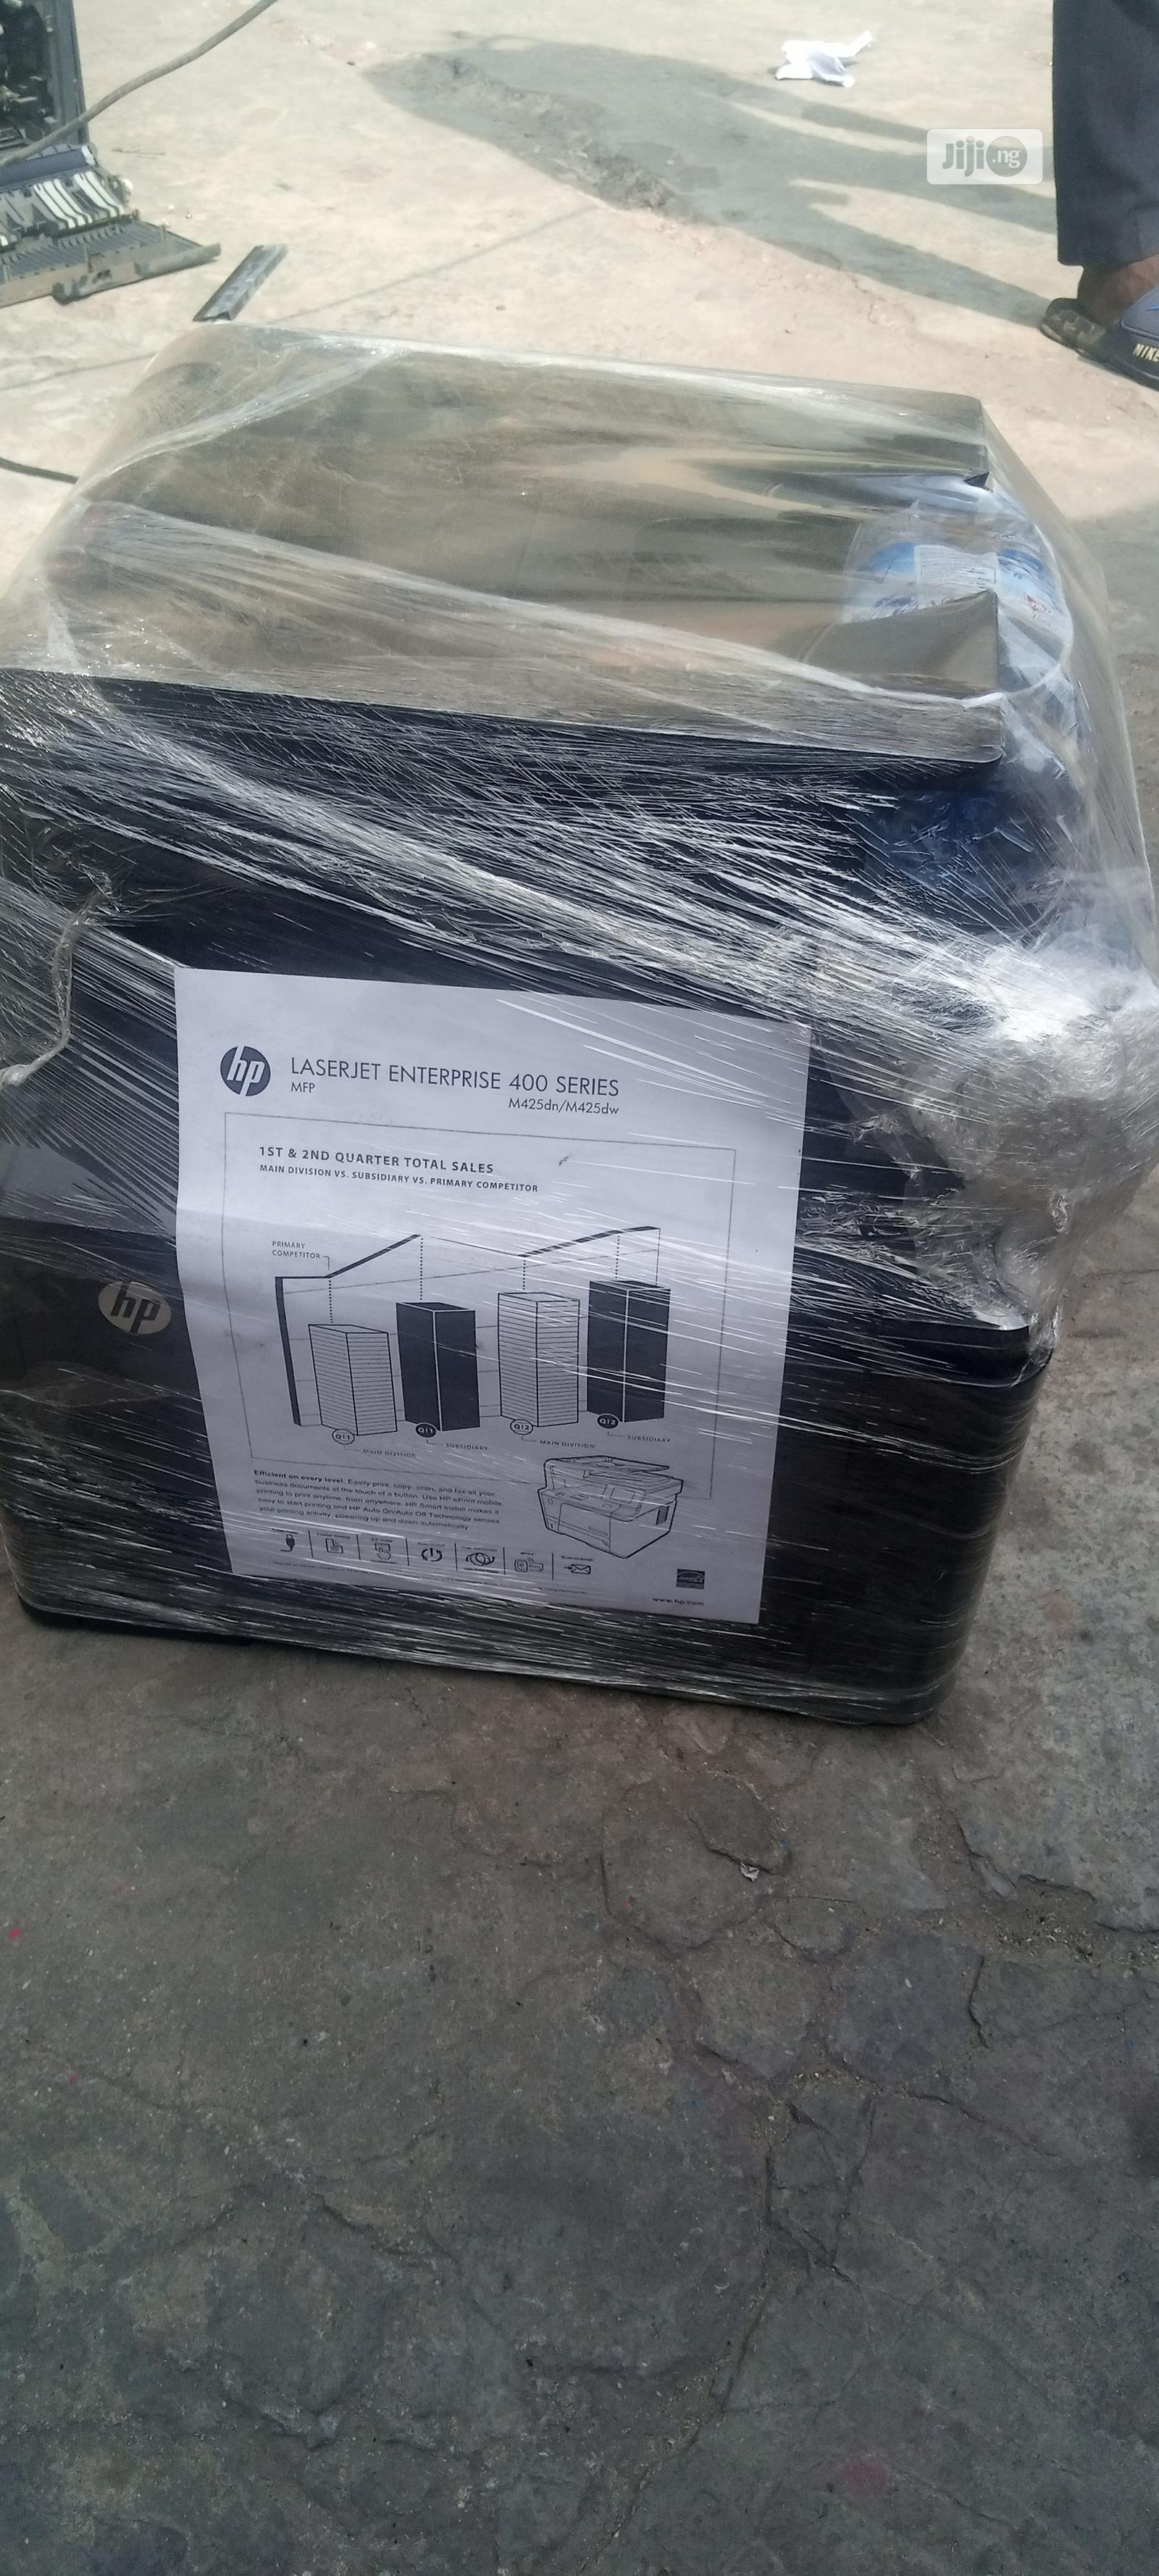 HP Laserjet Pro 400 3in1 Black And White   Printers & Scanners for sale in Surulere, Lagos State, Nigeria